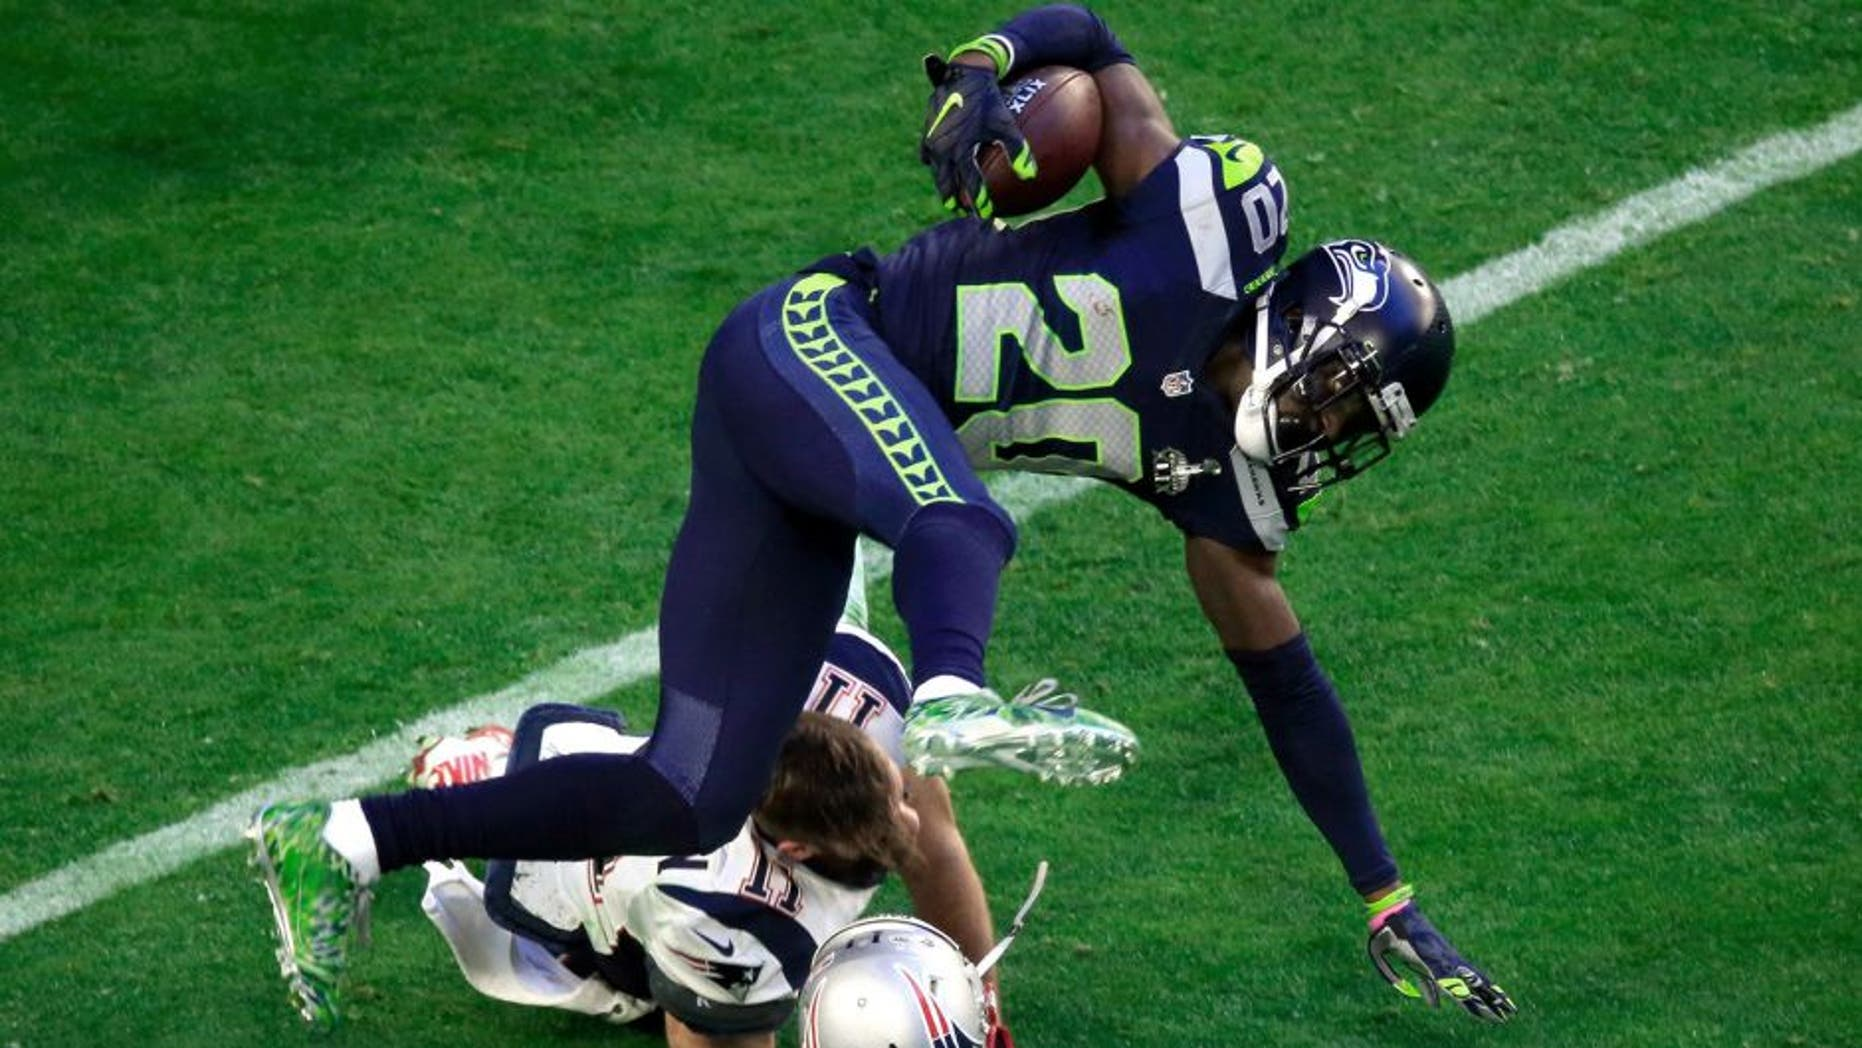 GLENDALE, AZ - FEBRUARY 01: Julian Edelman #11 of the New England Patriots tackles Jeremy Lane #20 of the Seattle Seahawks after an interception in the first quarter during Super Bowl XLIX at University of Phoenix Stadium on February 1, 2015 in Glendale, Arizona. (Photo by Jamie Squire/Getty Images)